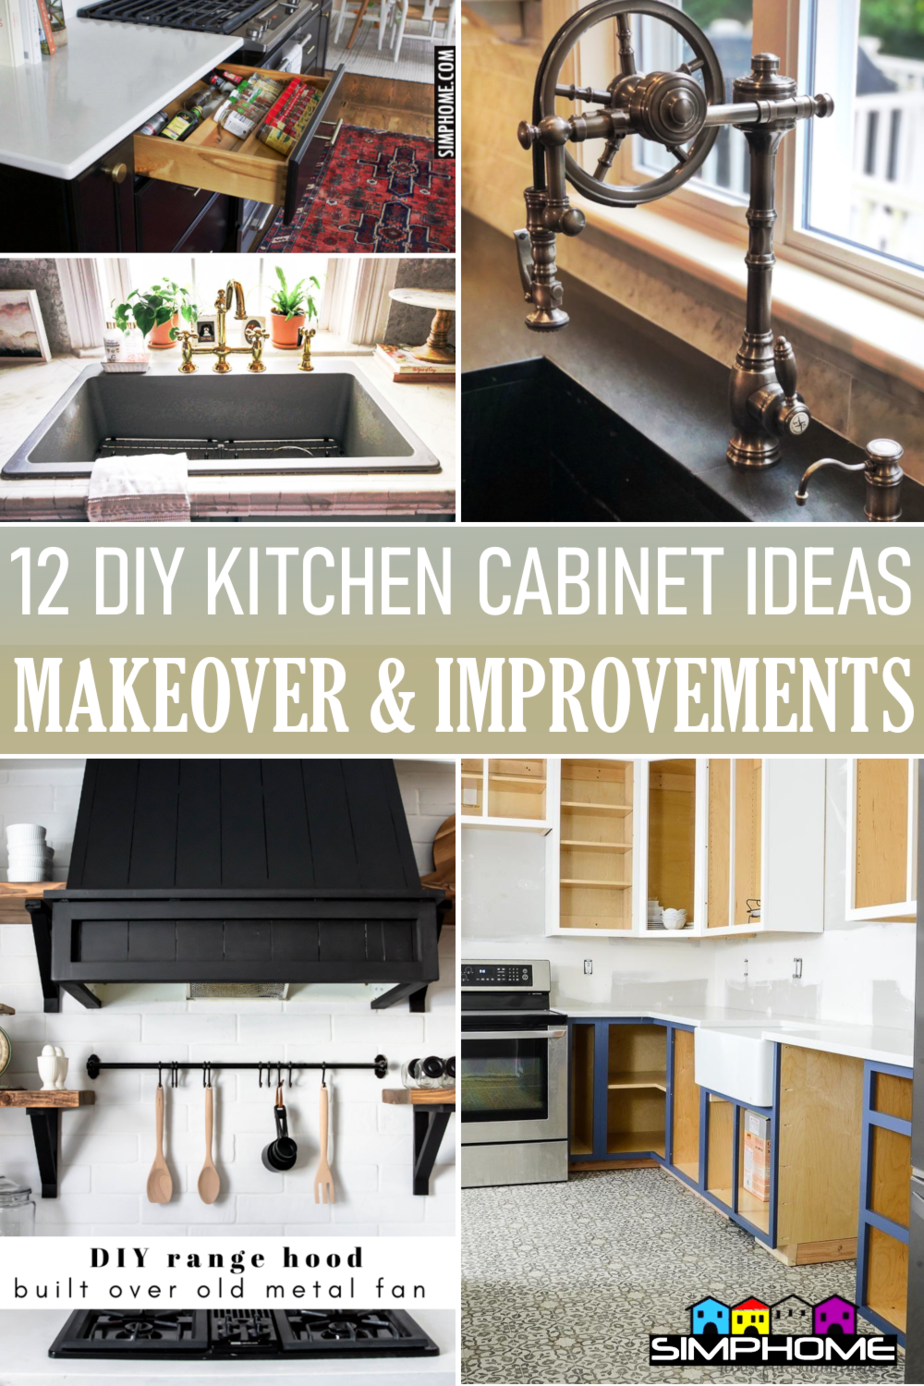 12 Kitchen Cabinet DIY Makeover Ideas via Simphome.comFeatured